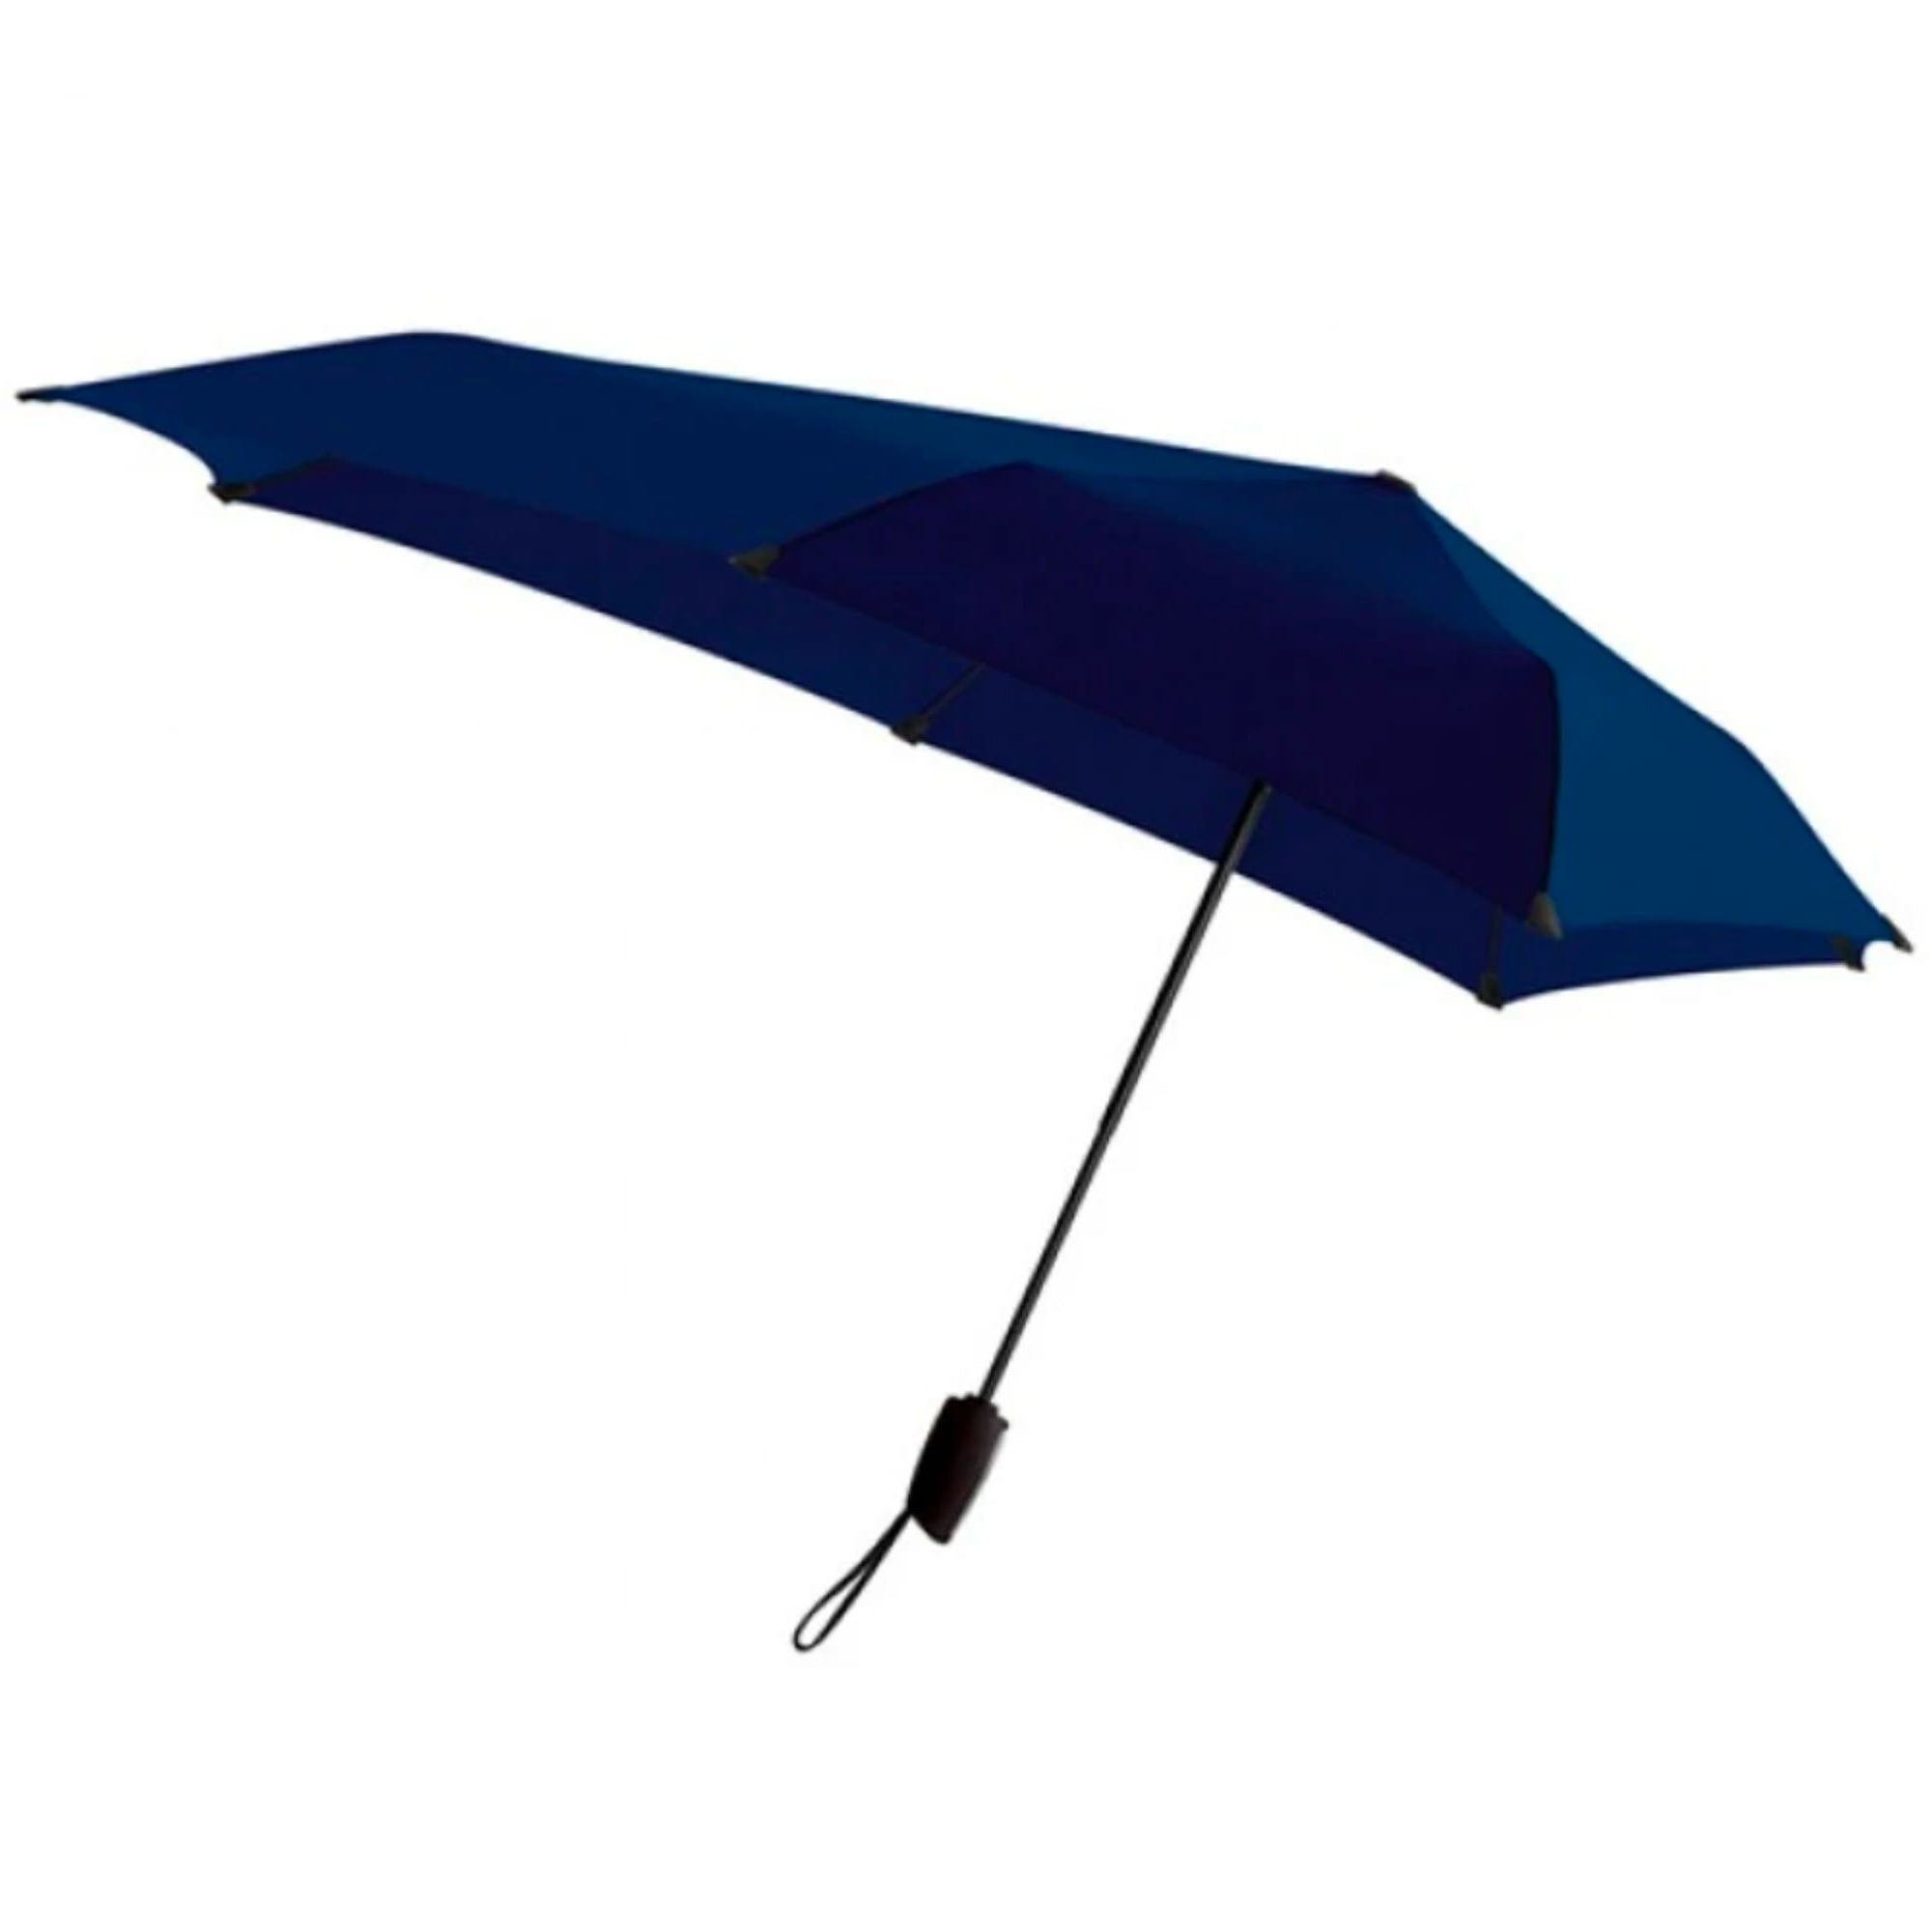 Senz° Automatic foldable umbrella, midnight blue